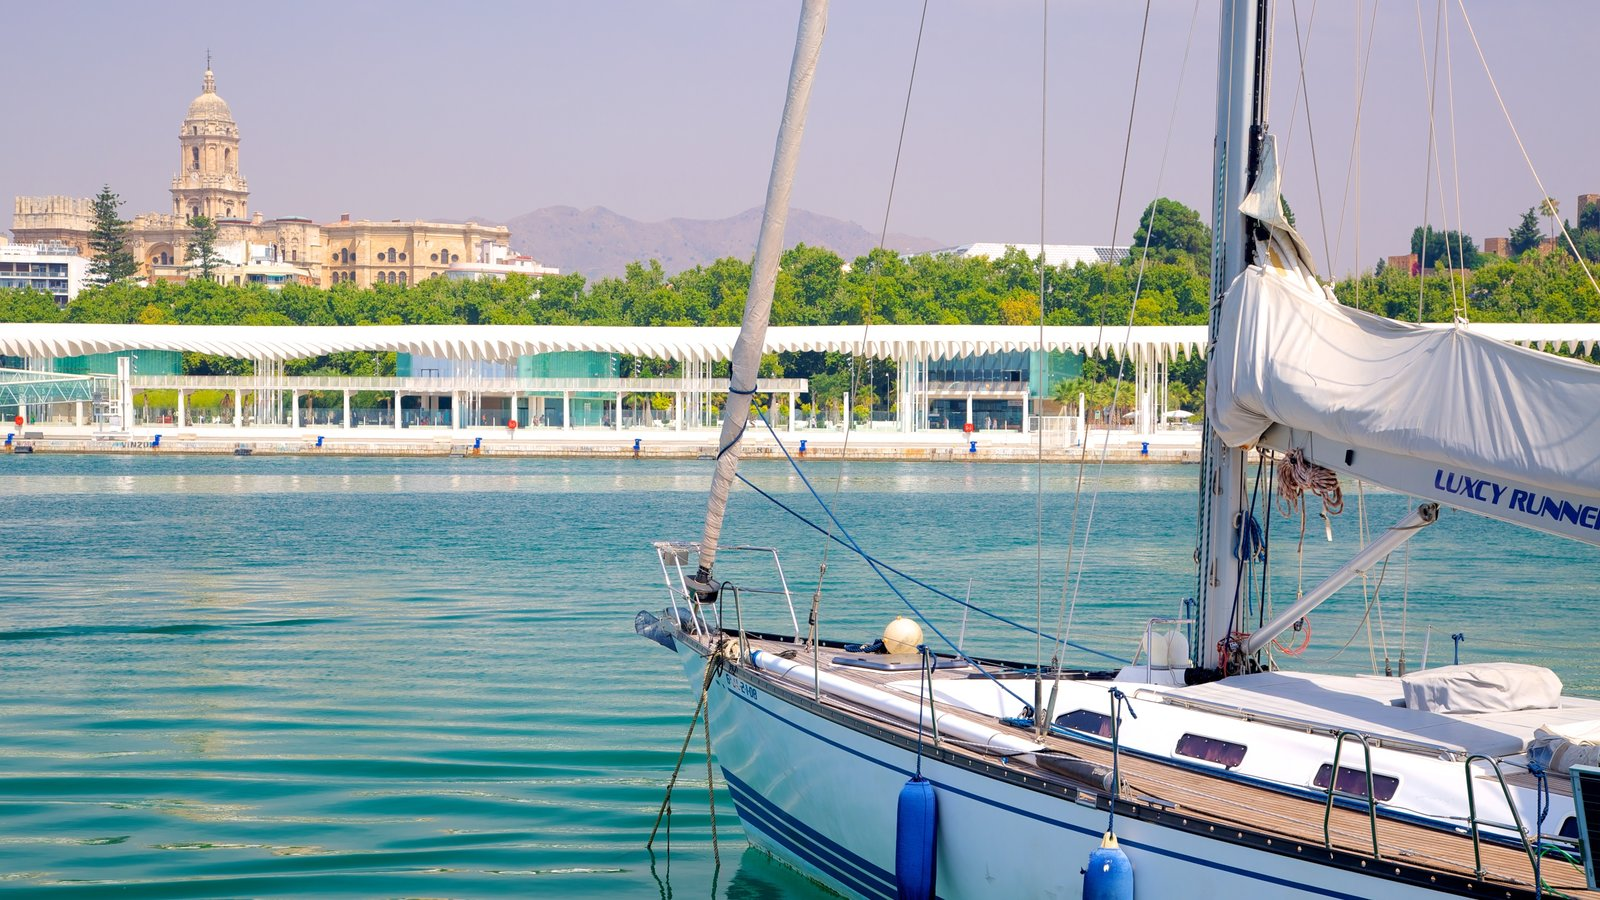 Malaga showing heritage architecture, a marina and boating